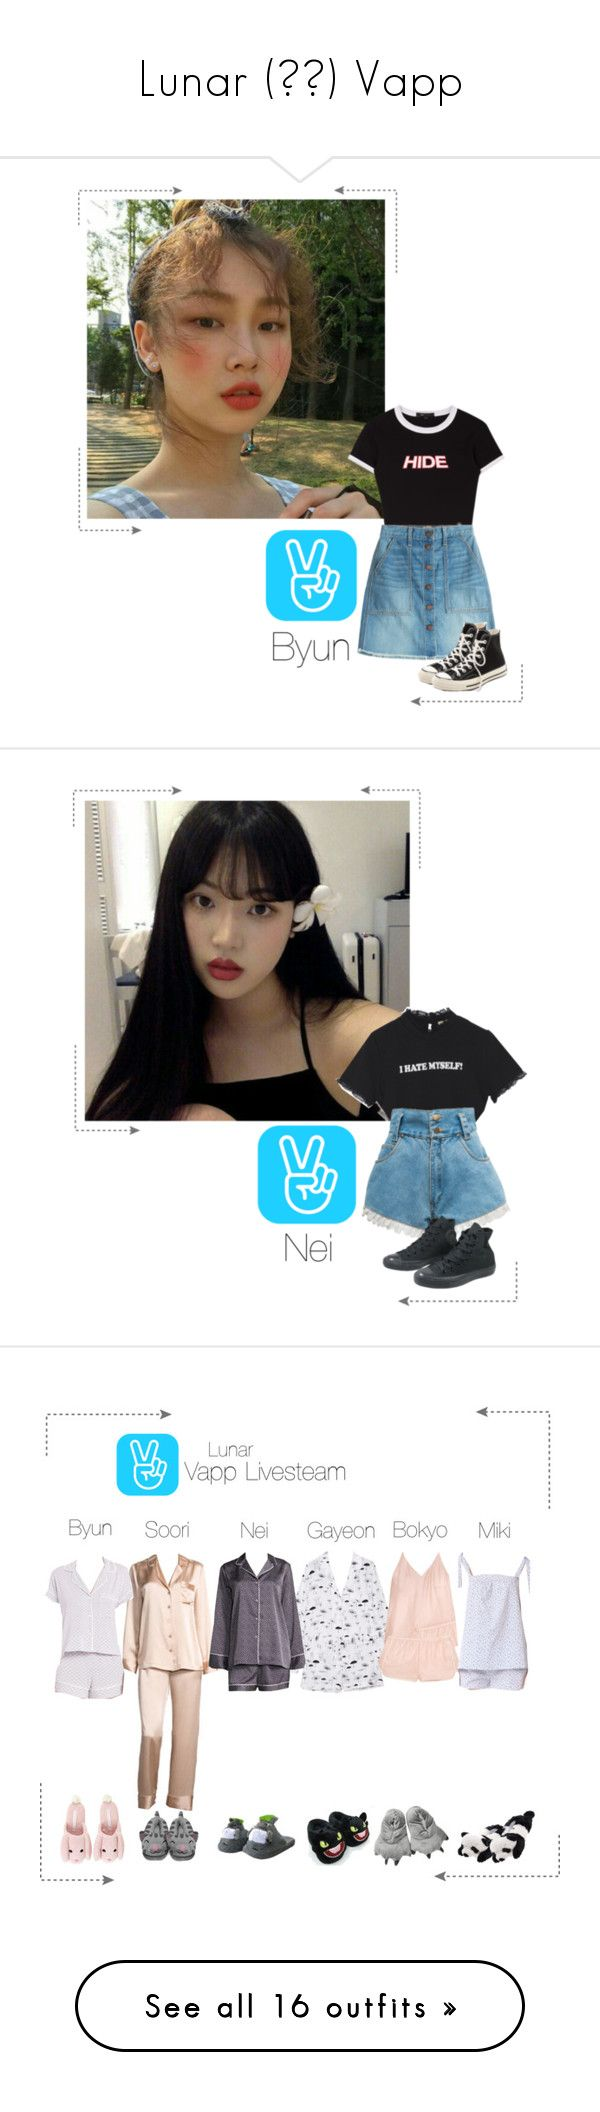 """Lunar (루나) Vapp"" by lunar-official ❤ liked on Polyvore featuring Current/Elliott, Converse, lunarvapp, Neiman Marcus, Equipment, Three J NYC, Natori, Eberjey, Tee and Cake and Vans"